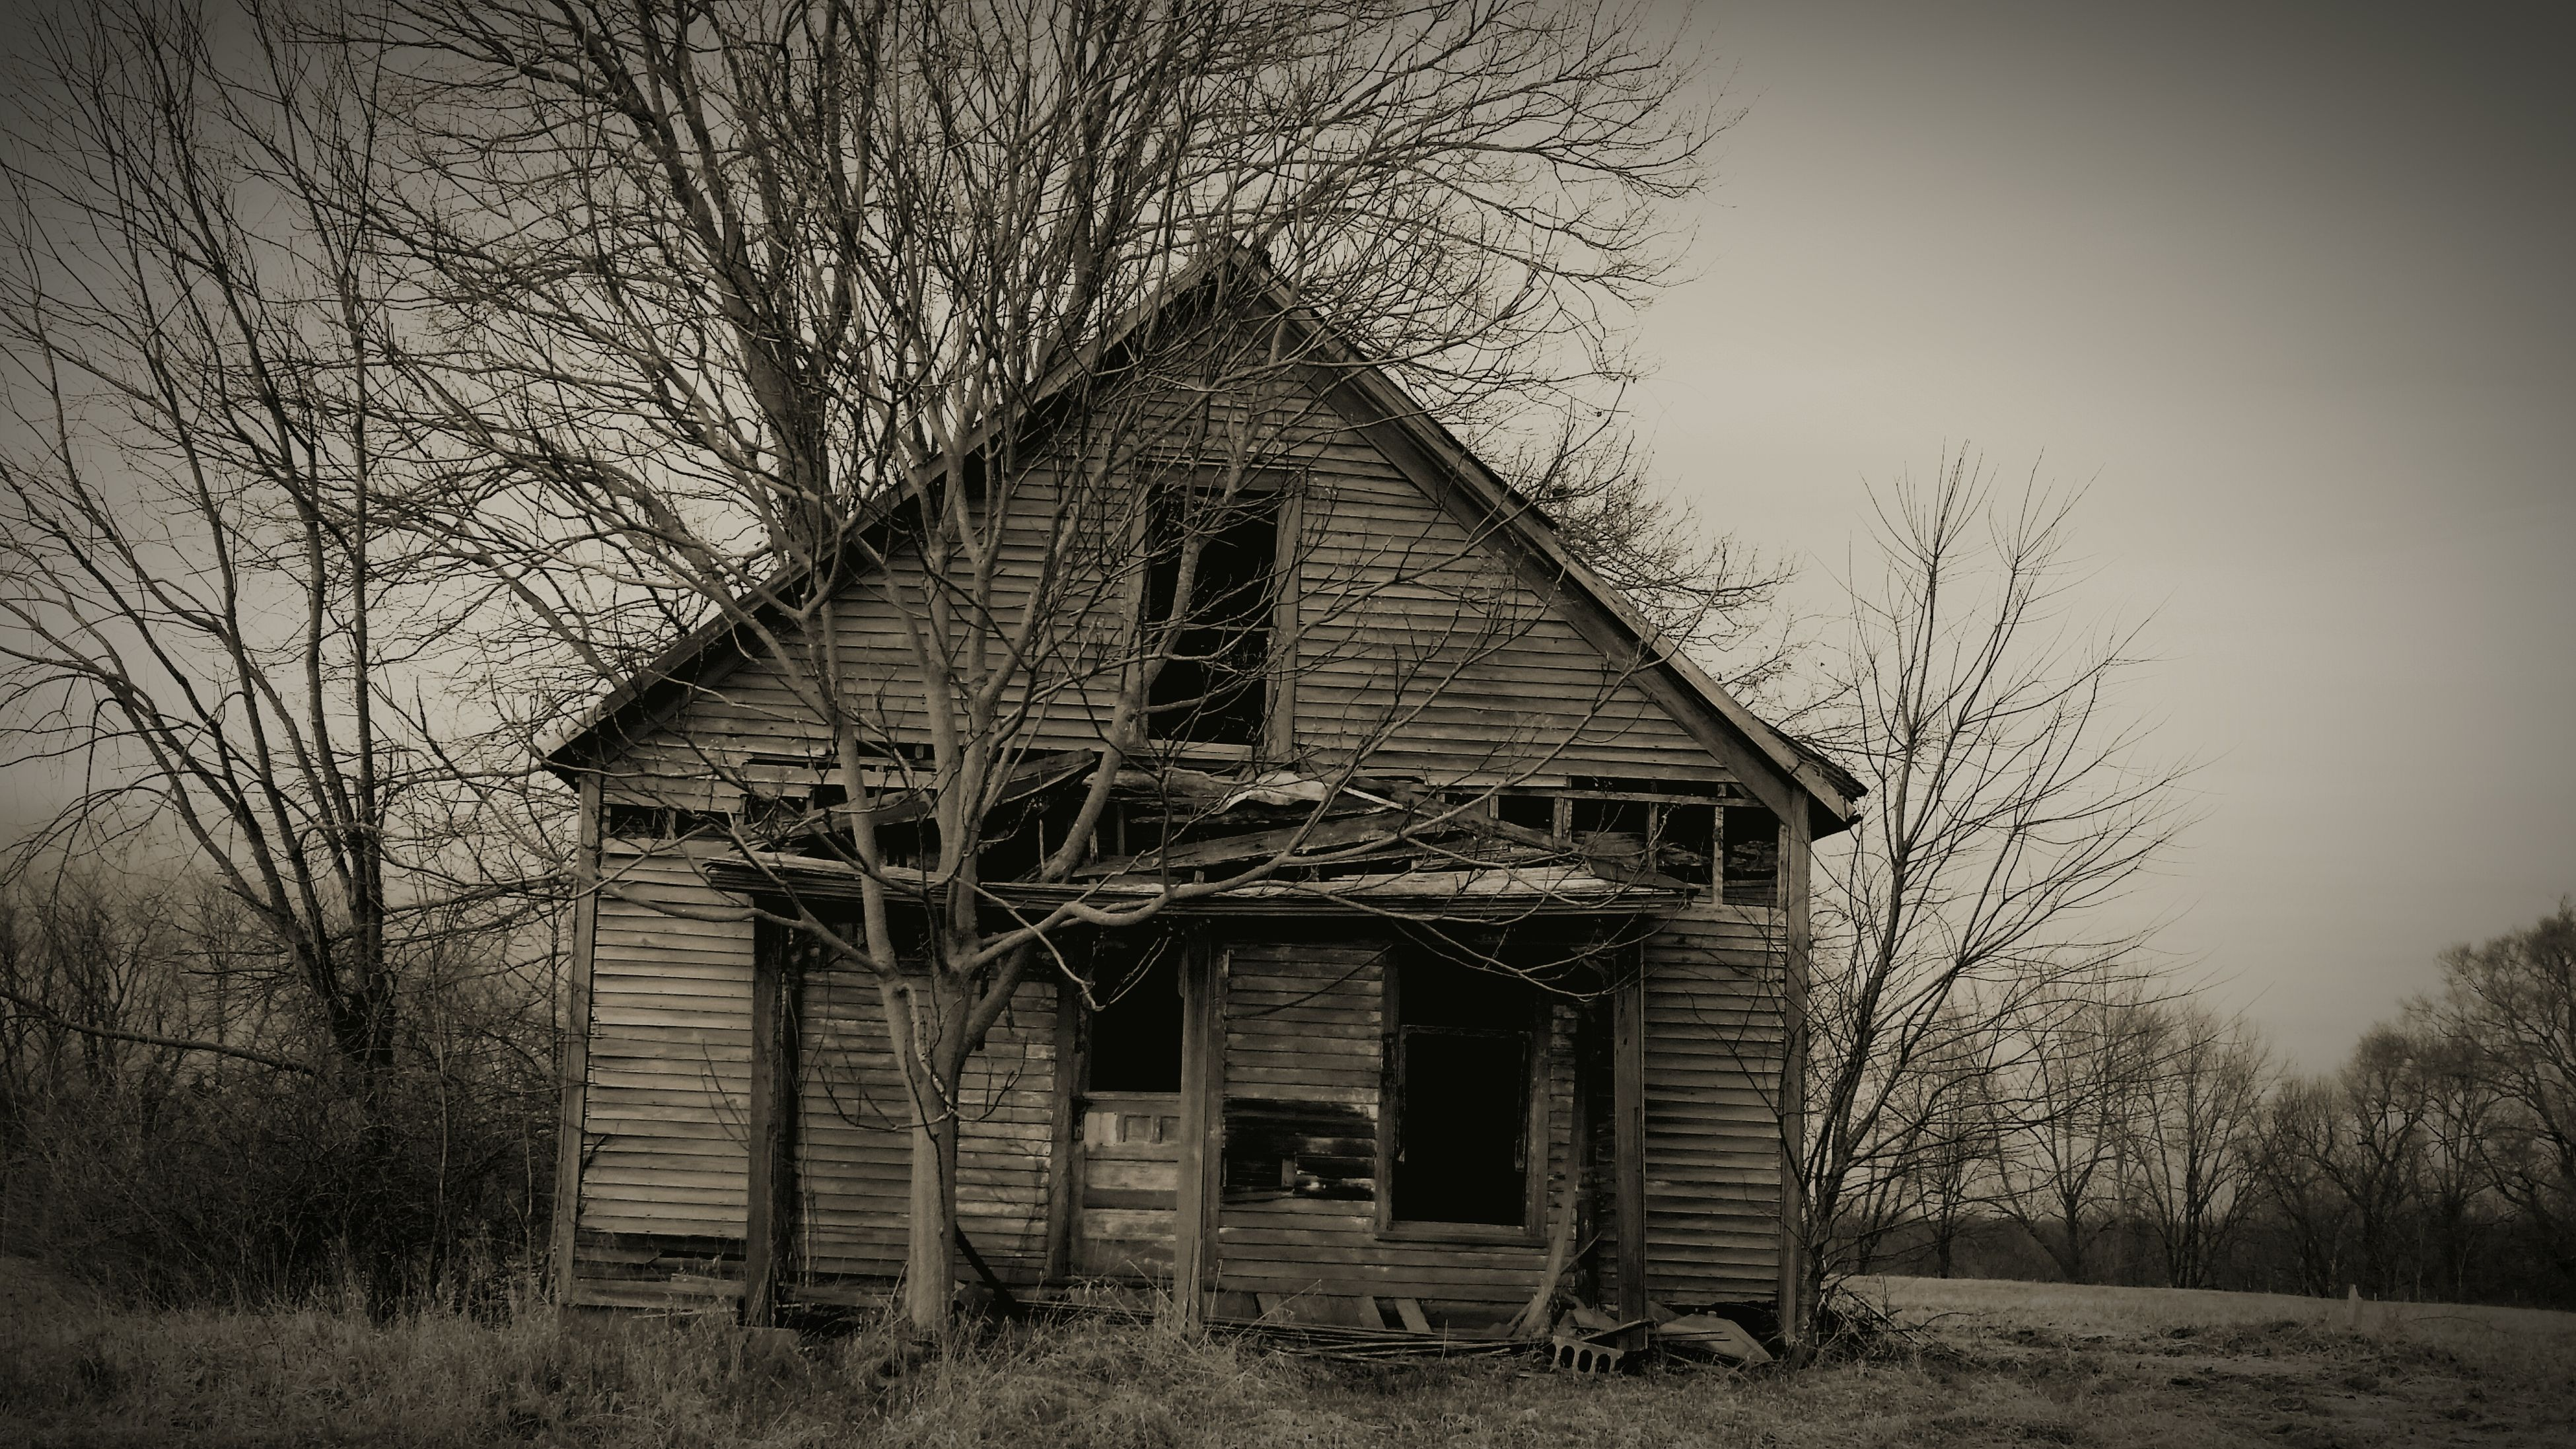 architecture, built structure, building exterior, abandoned, bare tree, old, house, tree, damaged, obsolete, clear sky, low angle view, run-down, deterioration, sky, day, outdoors, no people, residential structure, branch